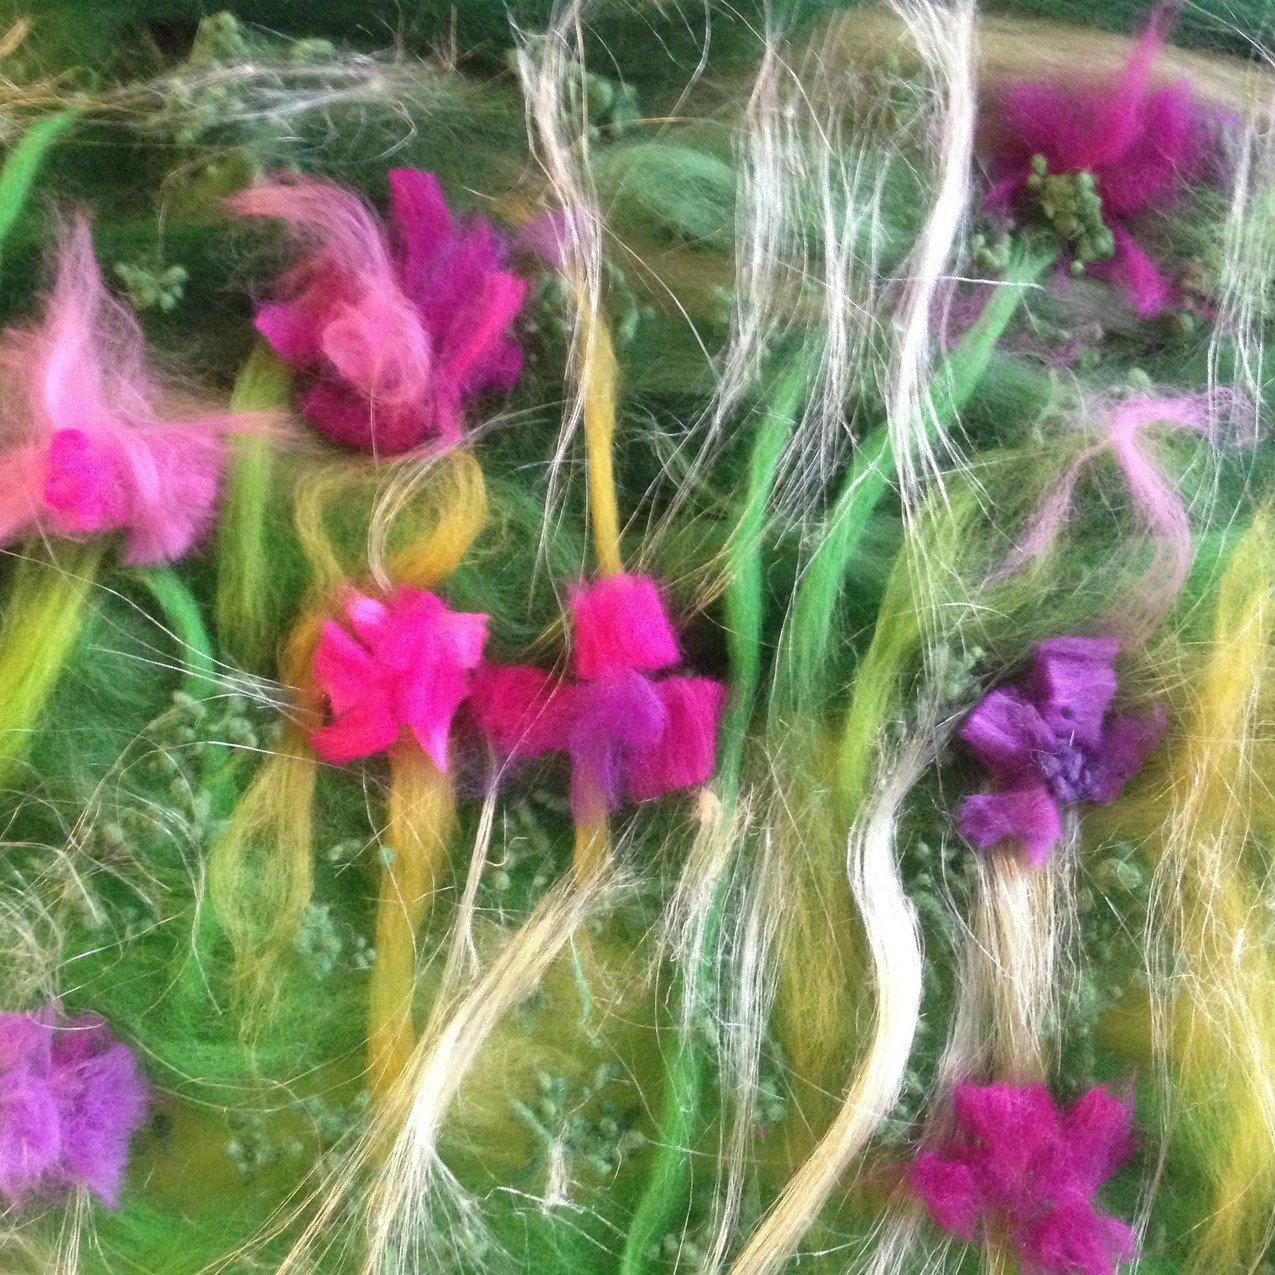 Flowers waiting to be felted